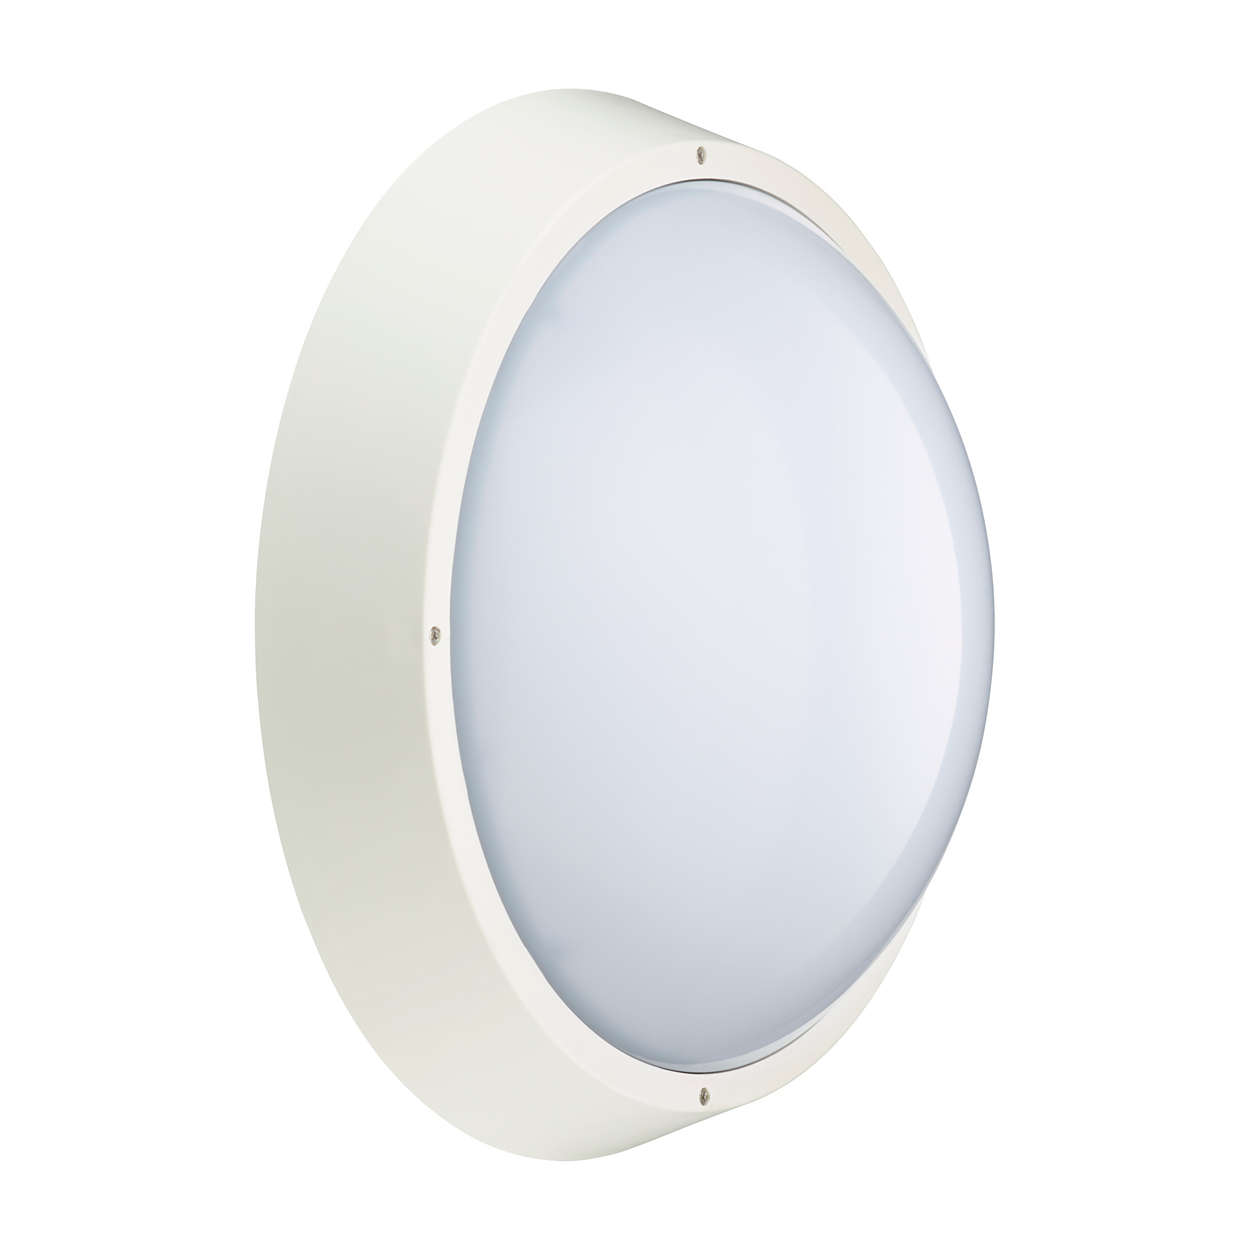 CoreLine Wall-mounted – the clear choice for LED